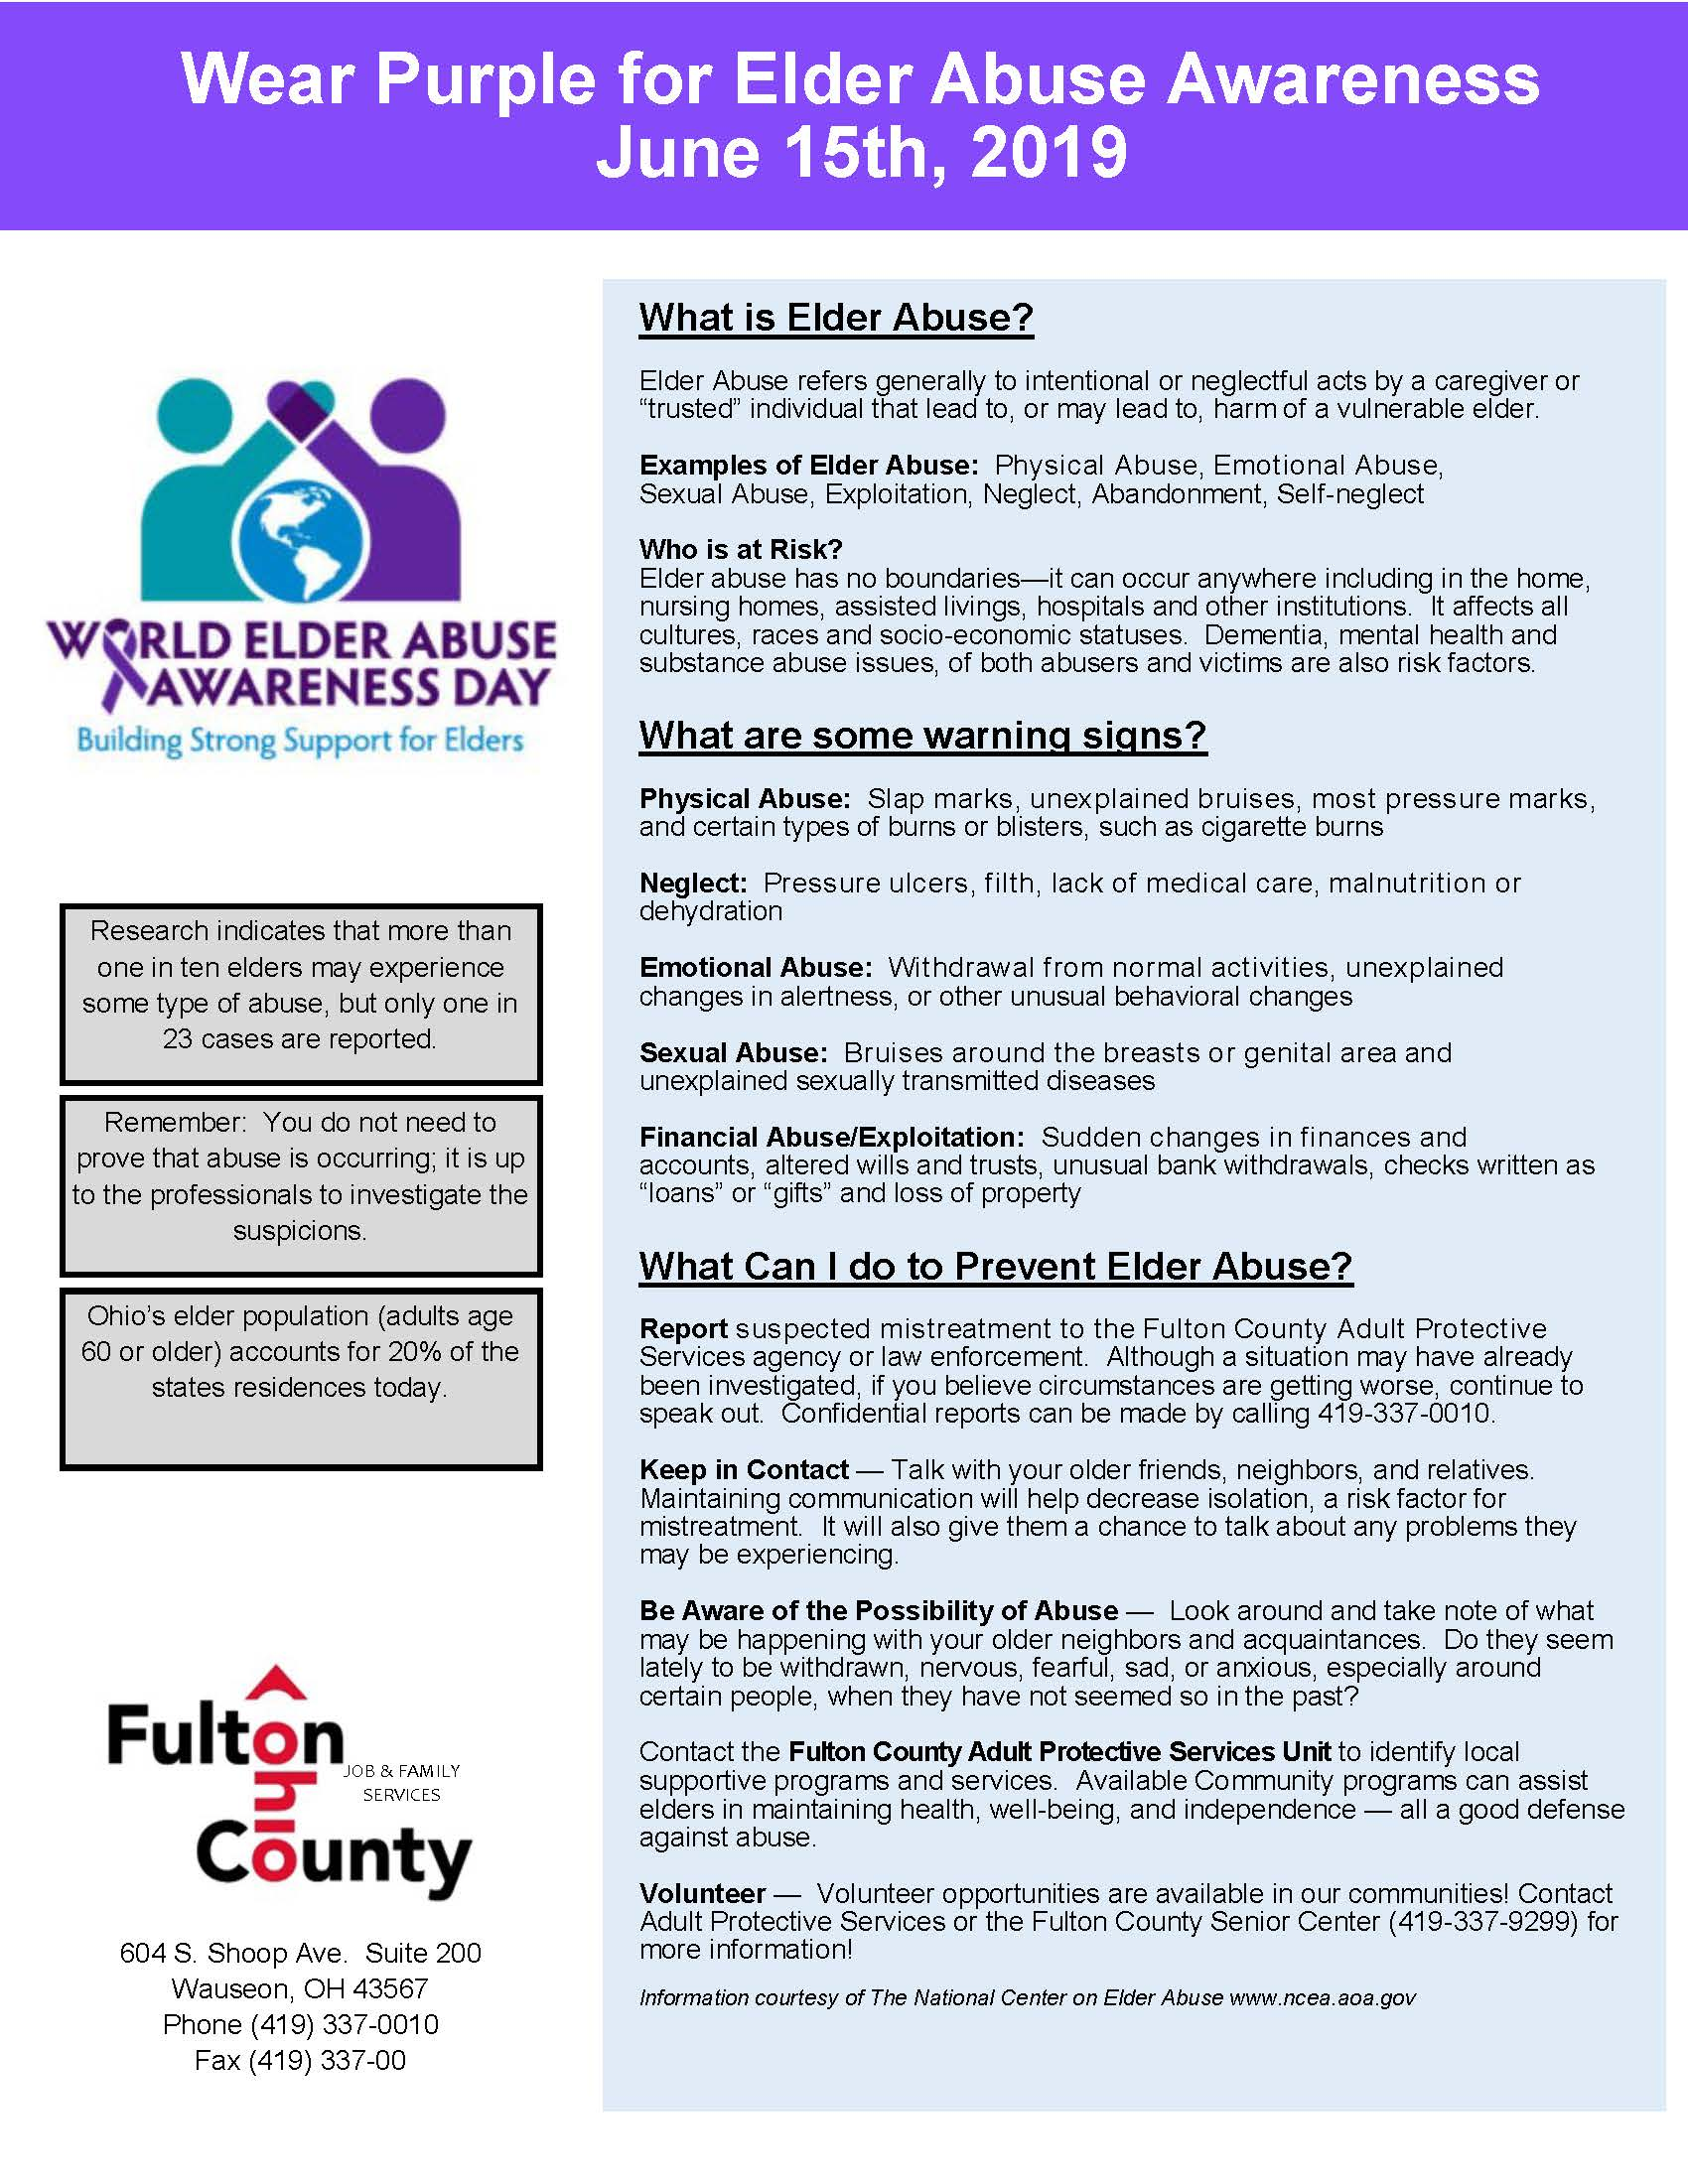 Elder Abuse Awareness Day Fact Sheet